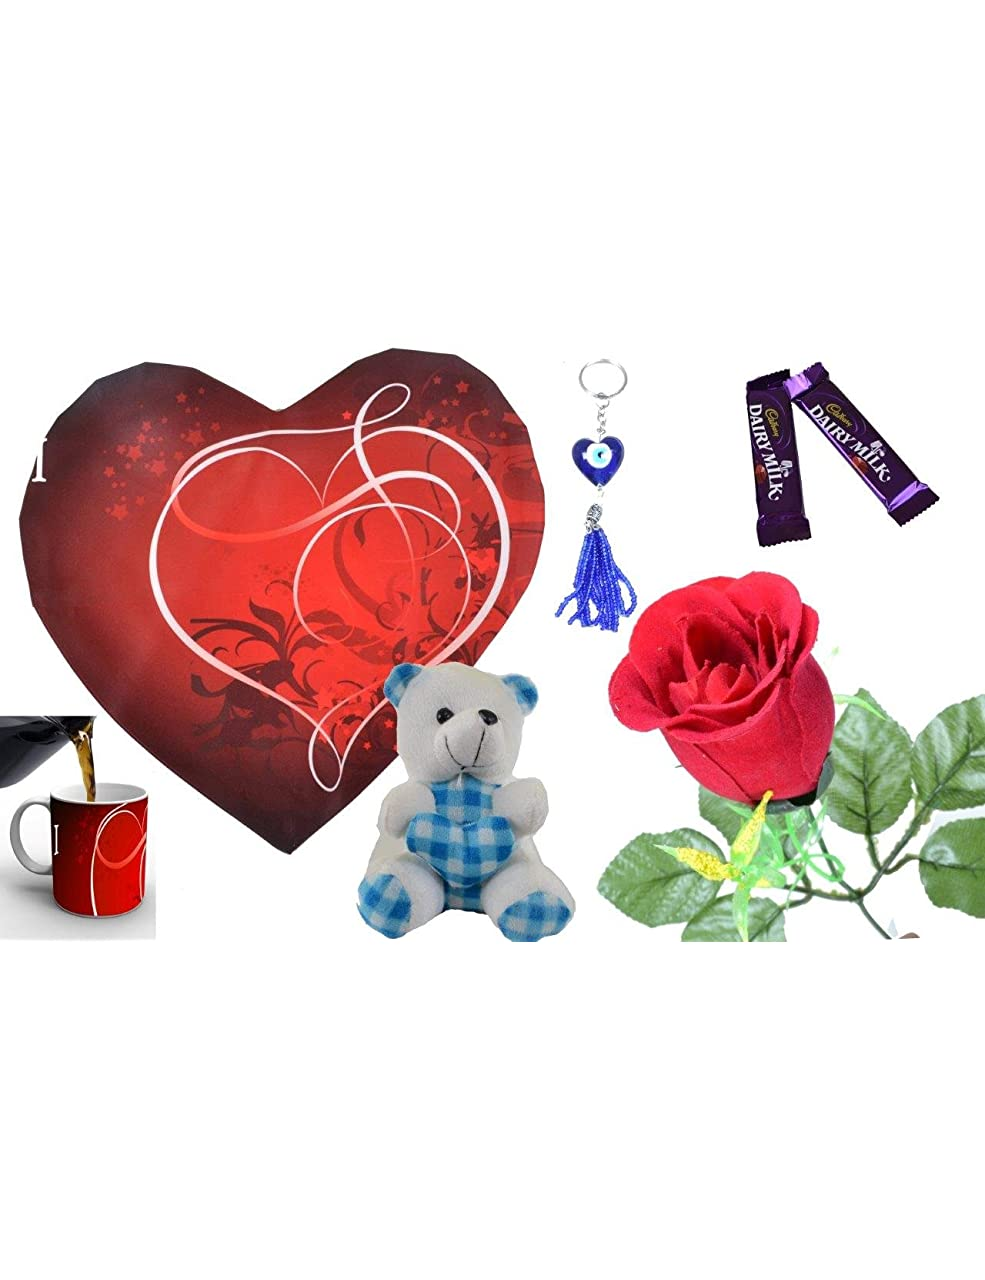 meSleep Digitally Printed Valentine 7 Piece Gift Set – Red (5-mug-Vcombo) @Rs.489